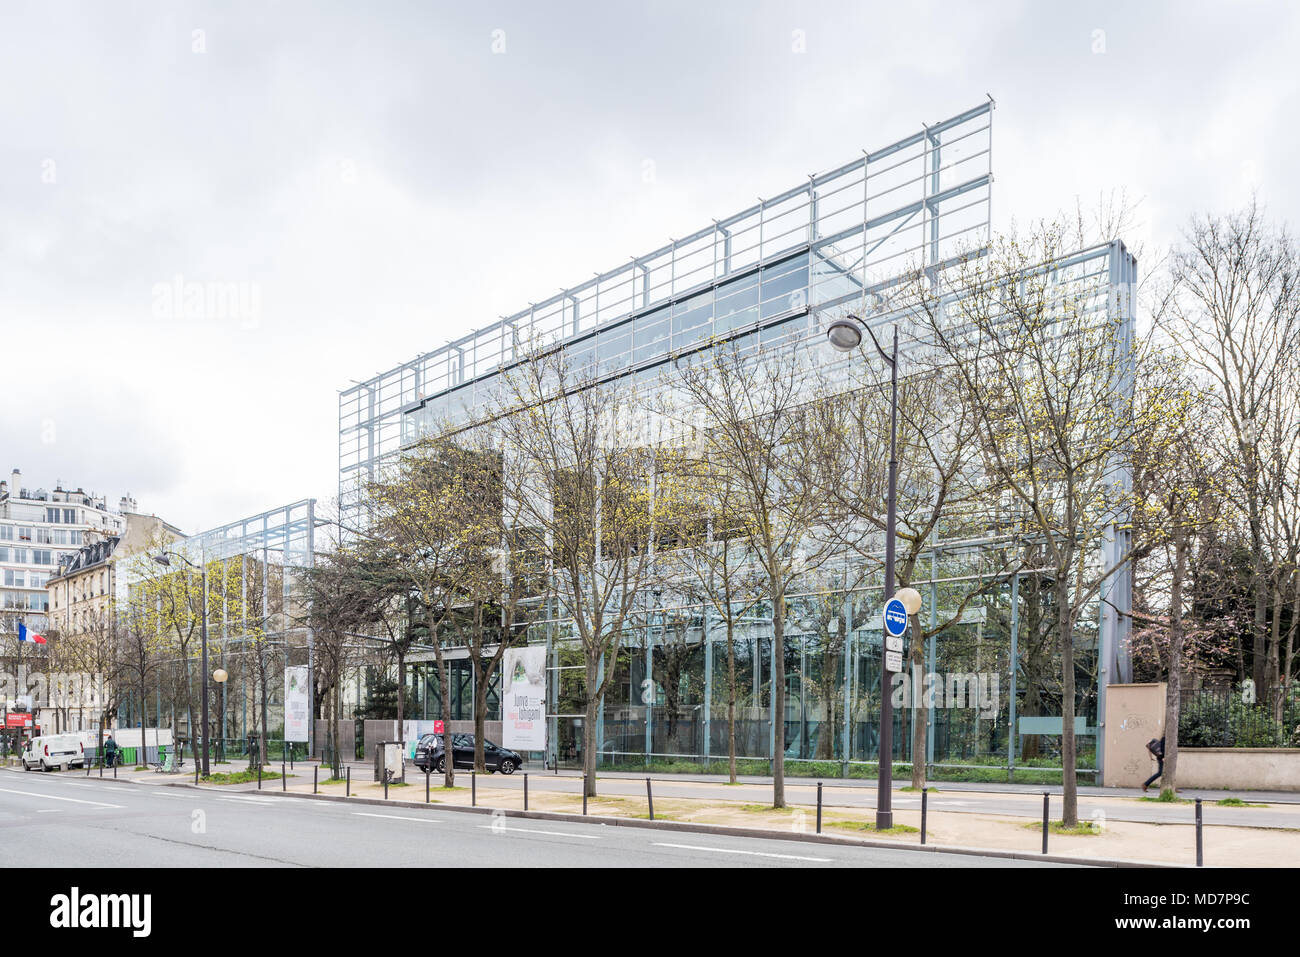 France, Paris - 5 April 2018: Fondation Cartier pour l'art contemporain designed by French architect Jean Nouvel Stock Photo